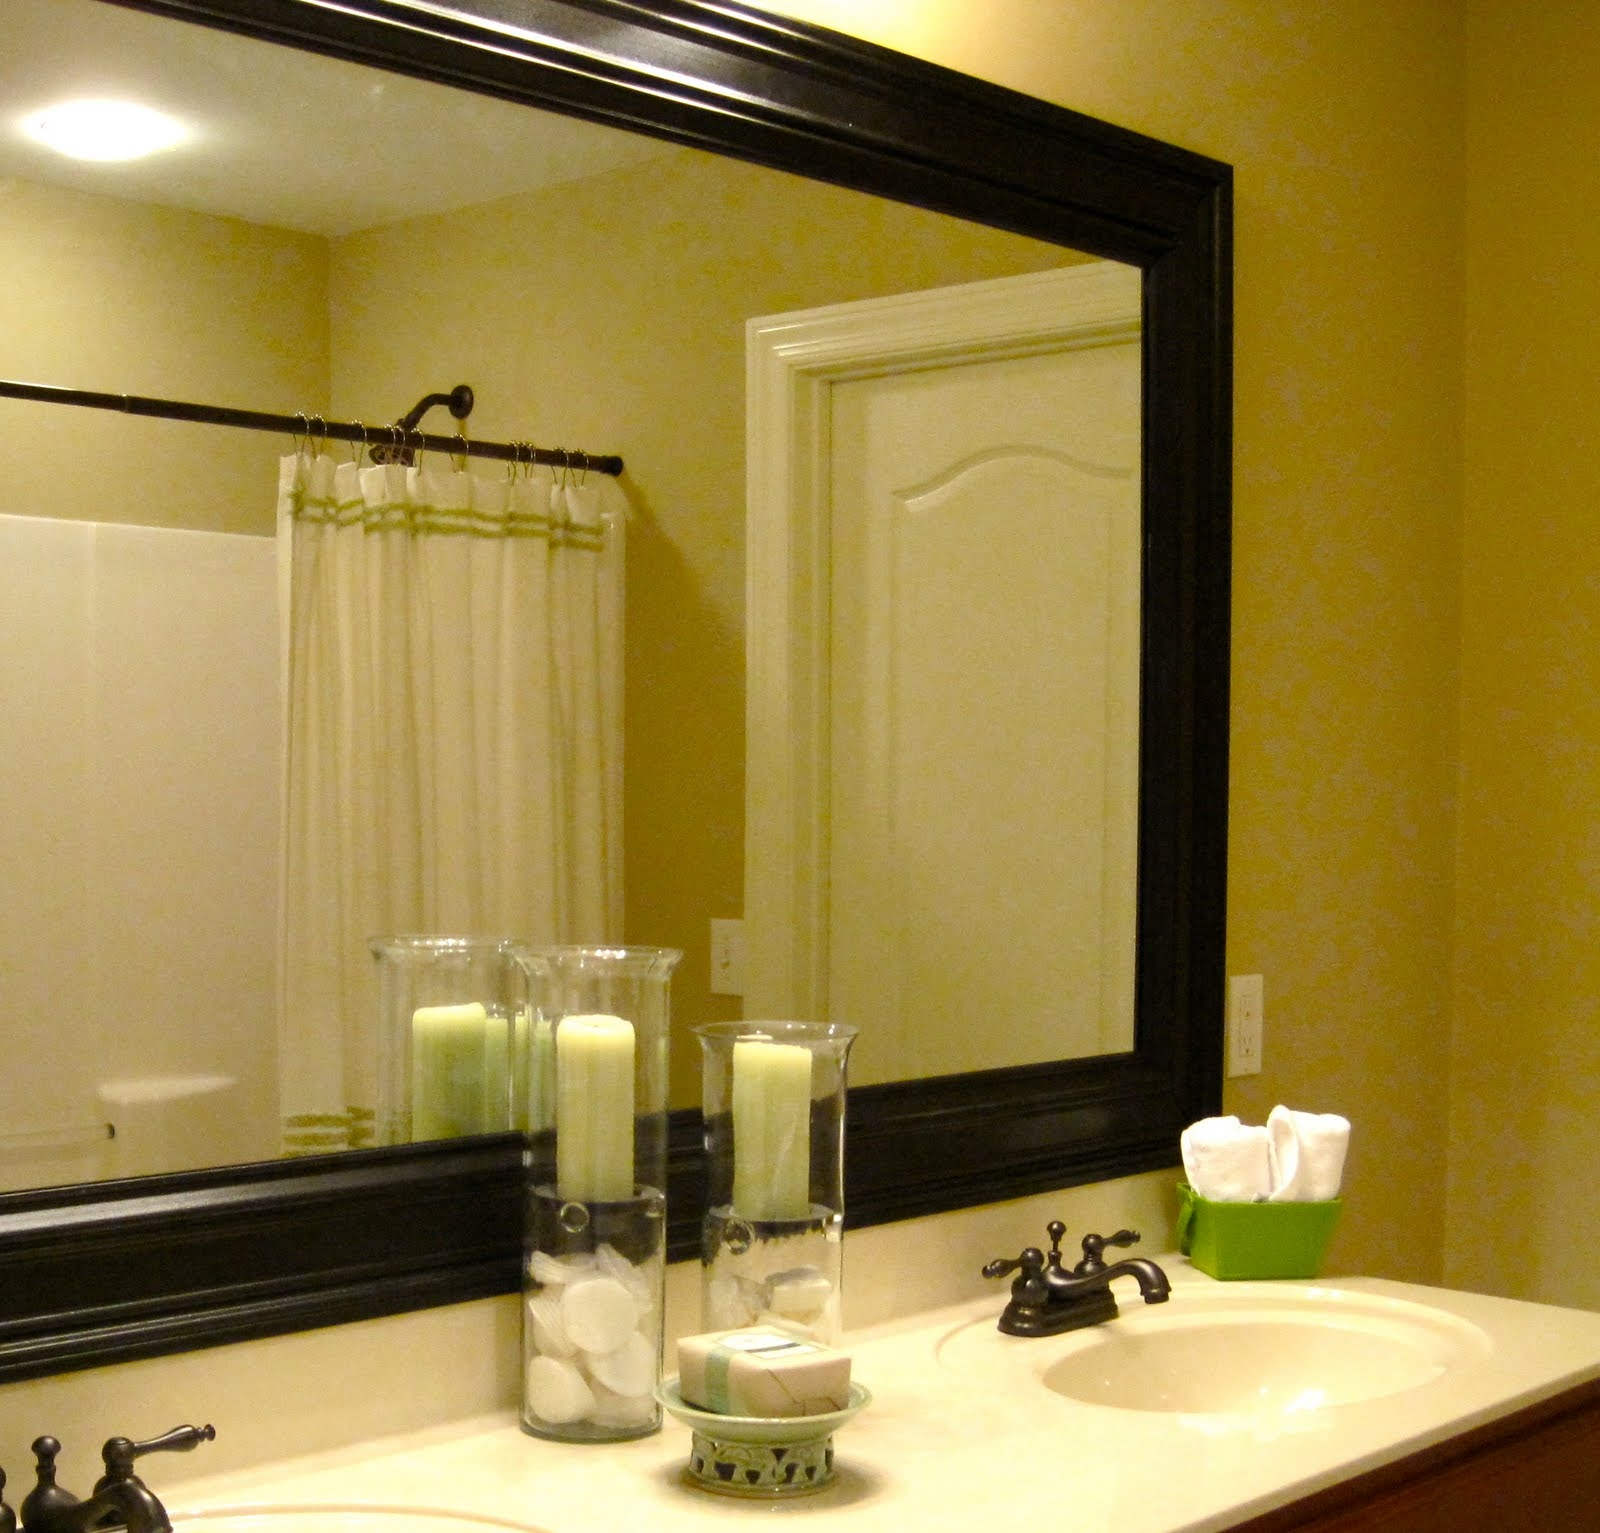 Adhesive Frames For Bathroom Mirrorsremodelaholic bathroom mirror frame tutorial